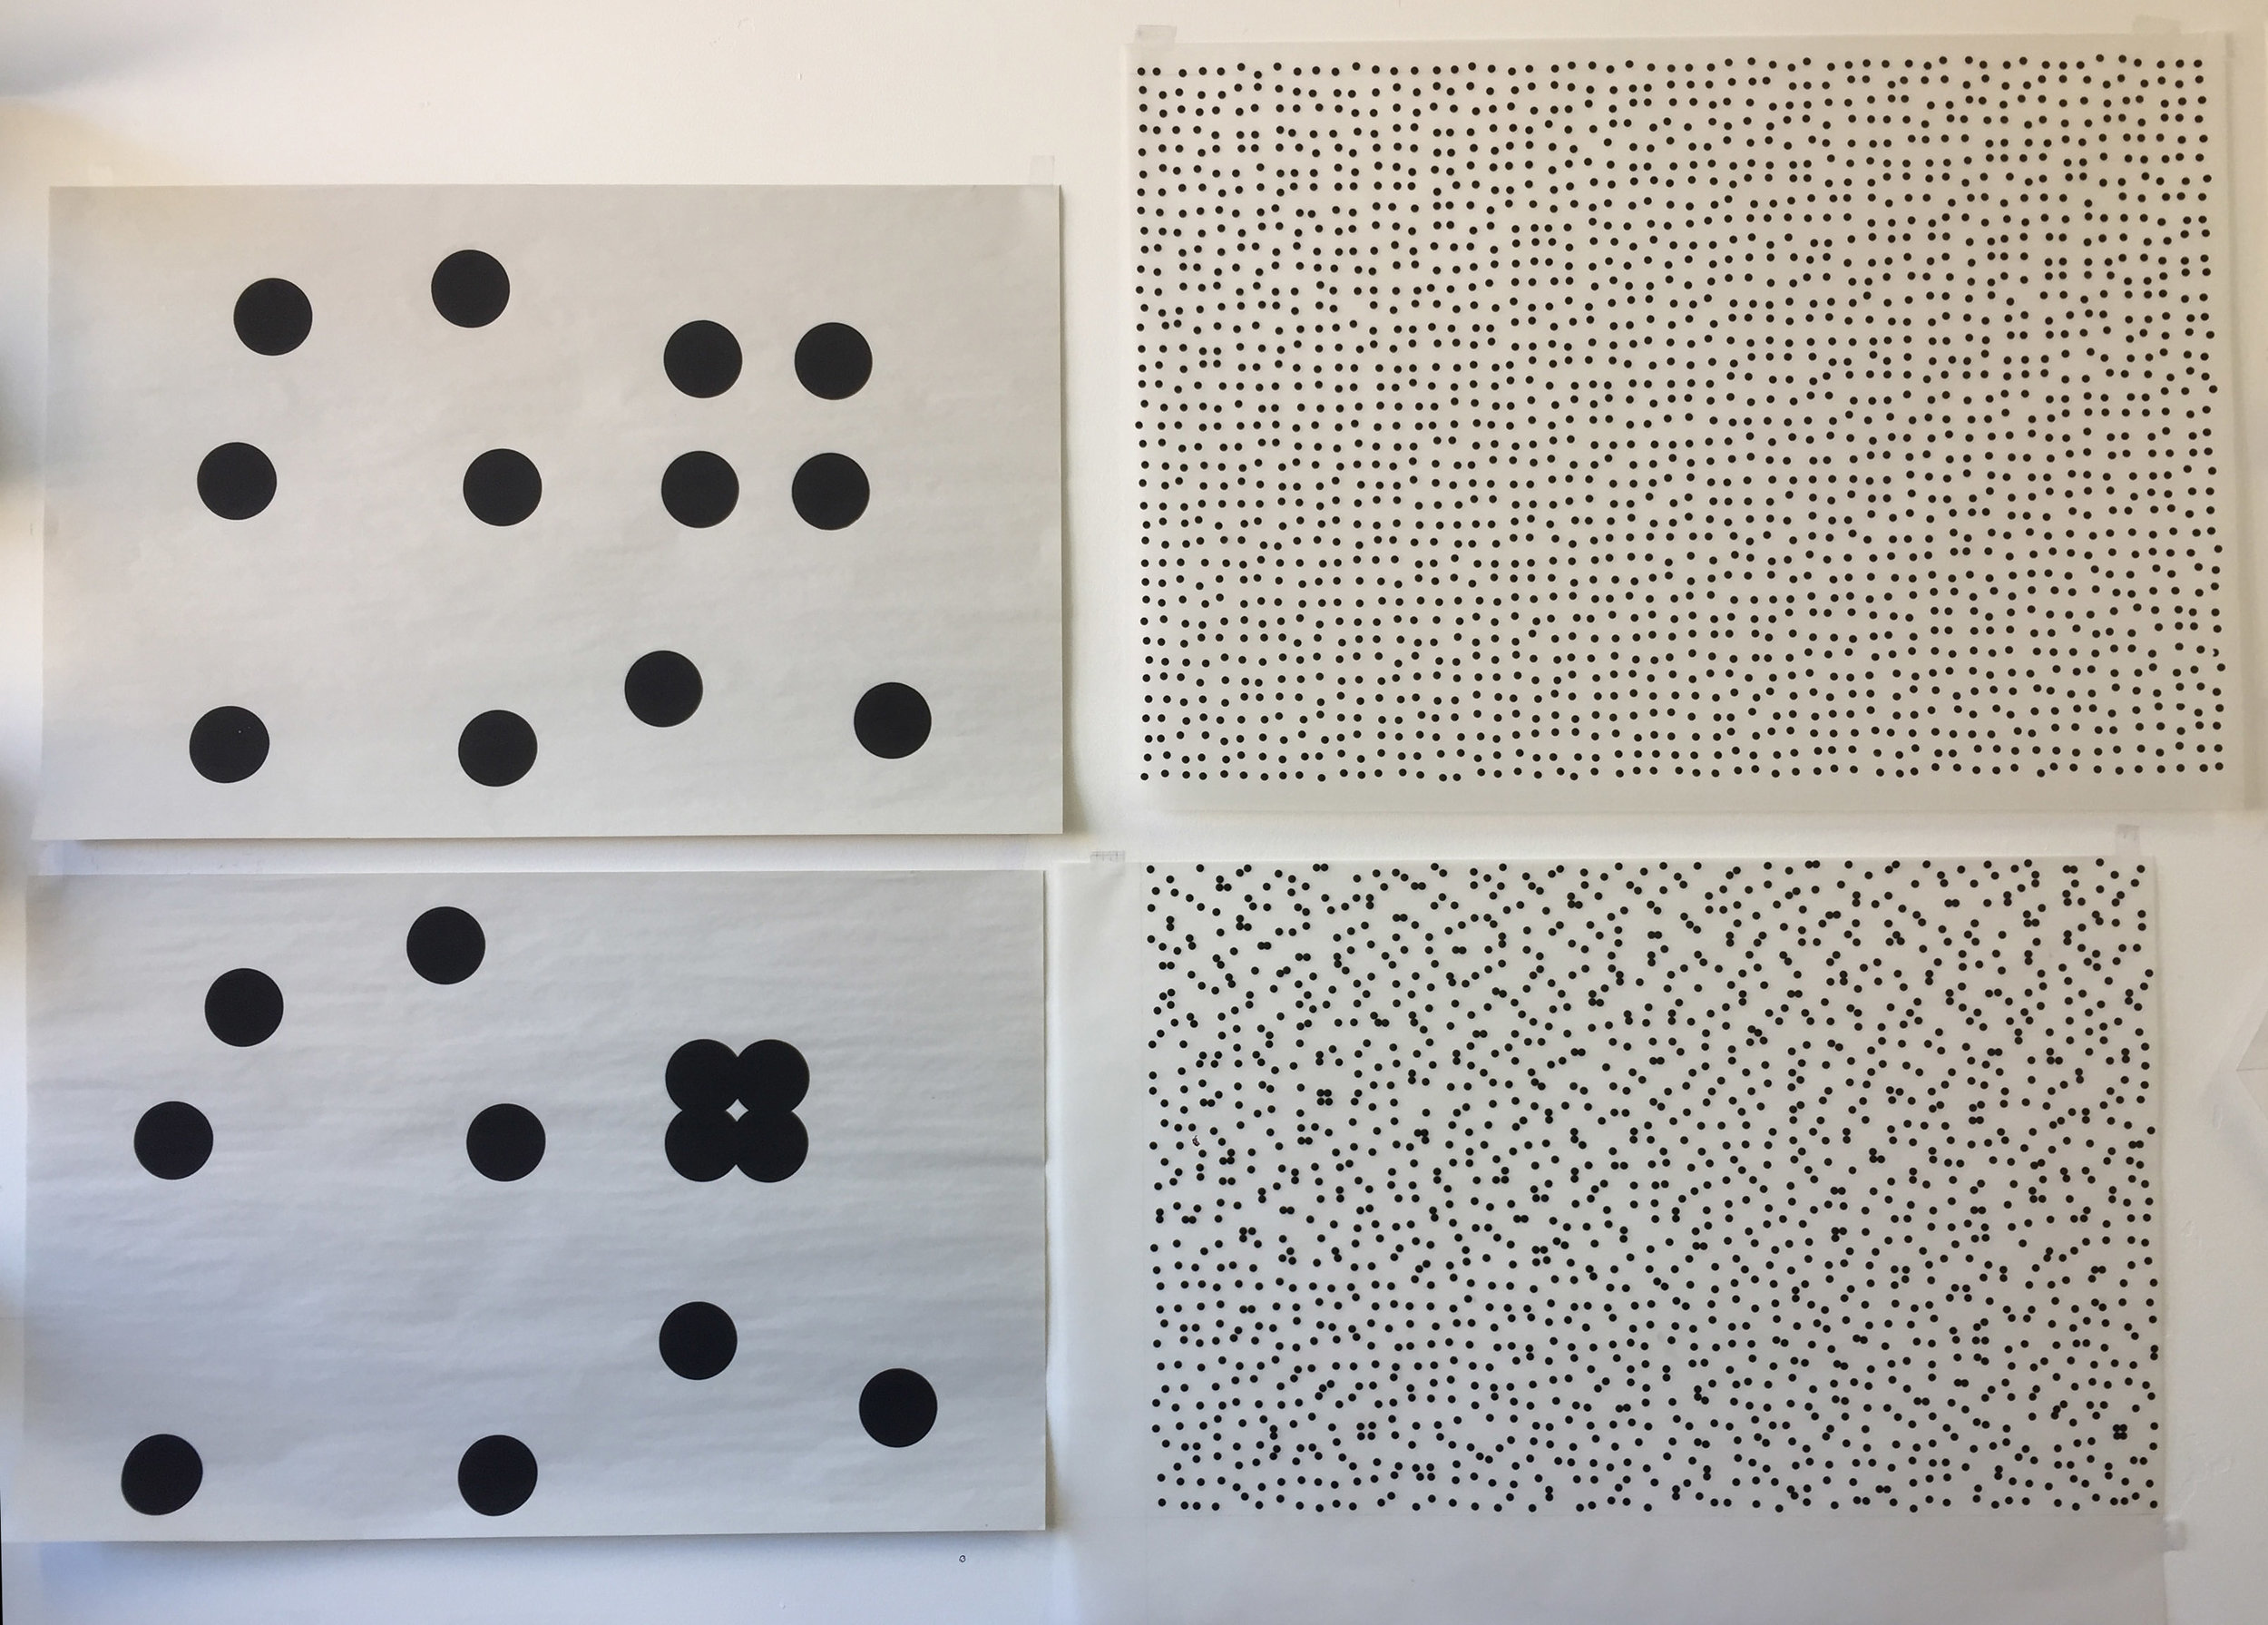 Studio wall, screen prints of two controlled disorders. Marie's research looks at why different different levels of disorder within a surface pattern affect cell response.